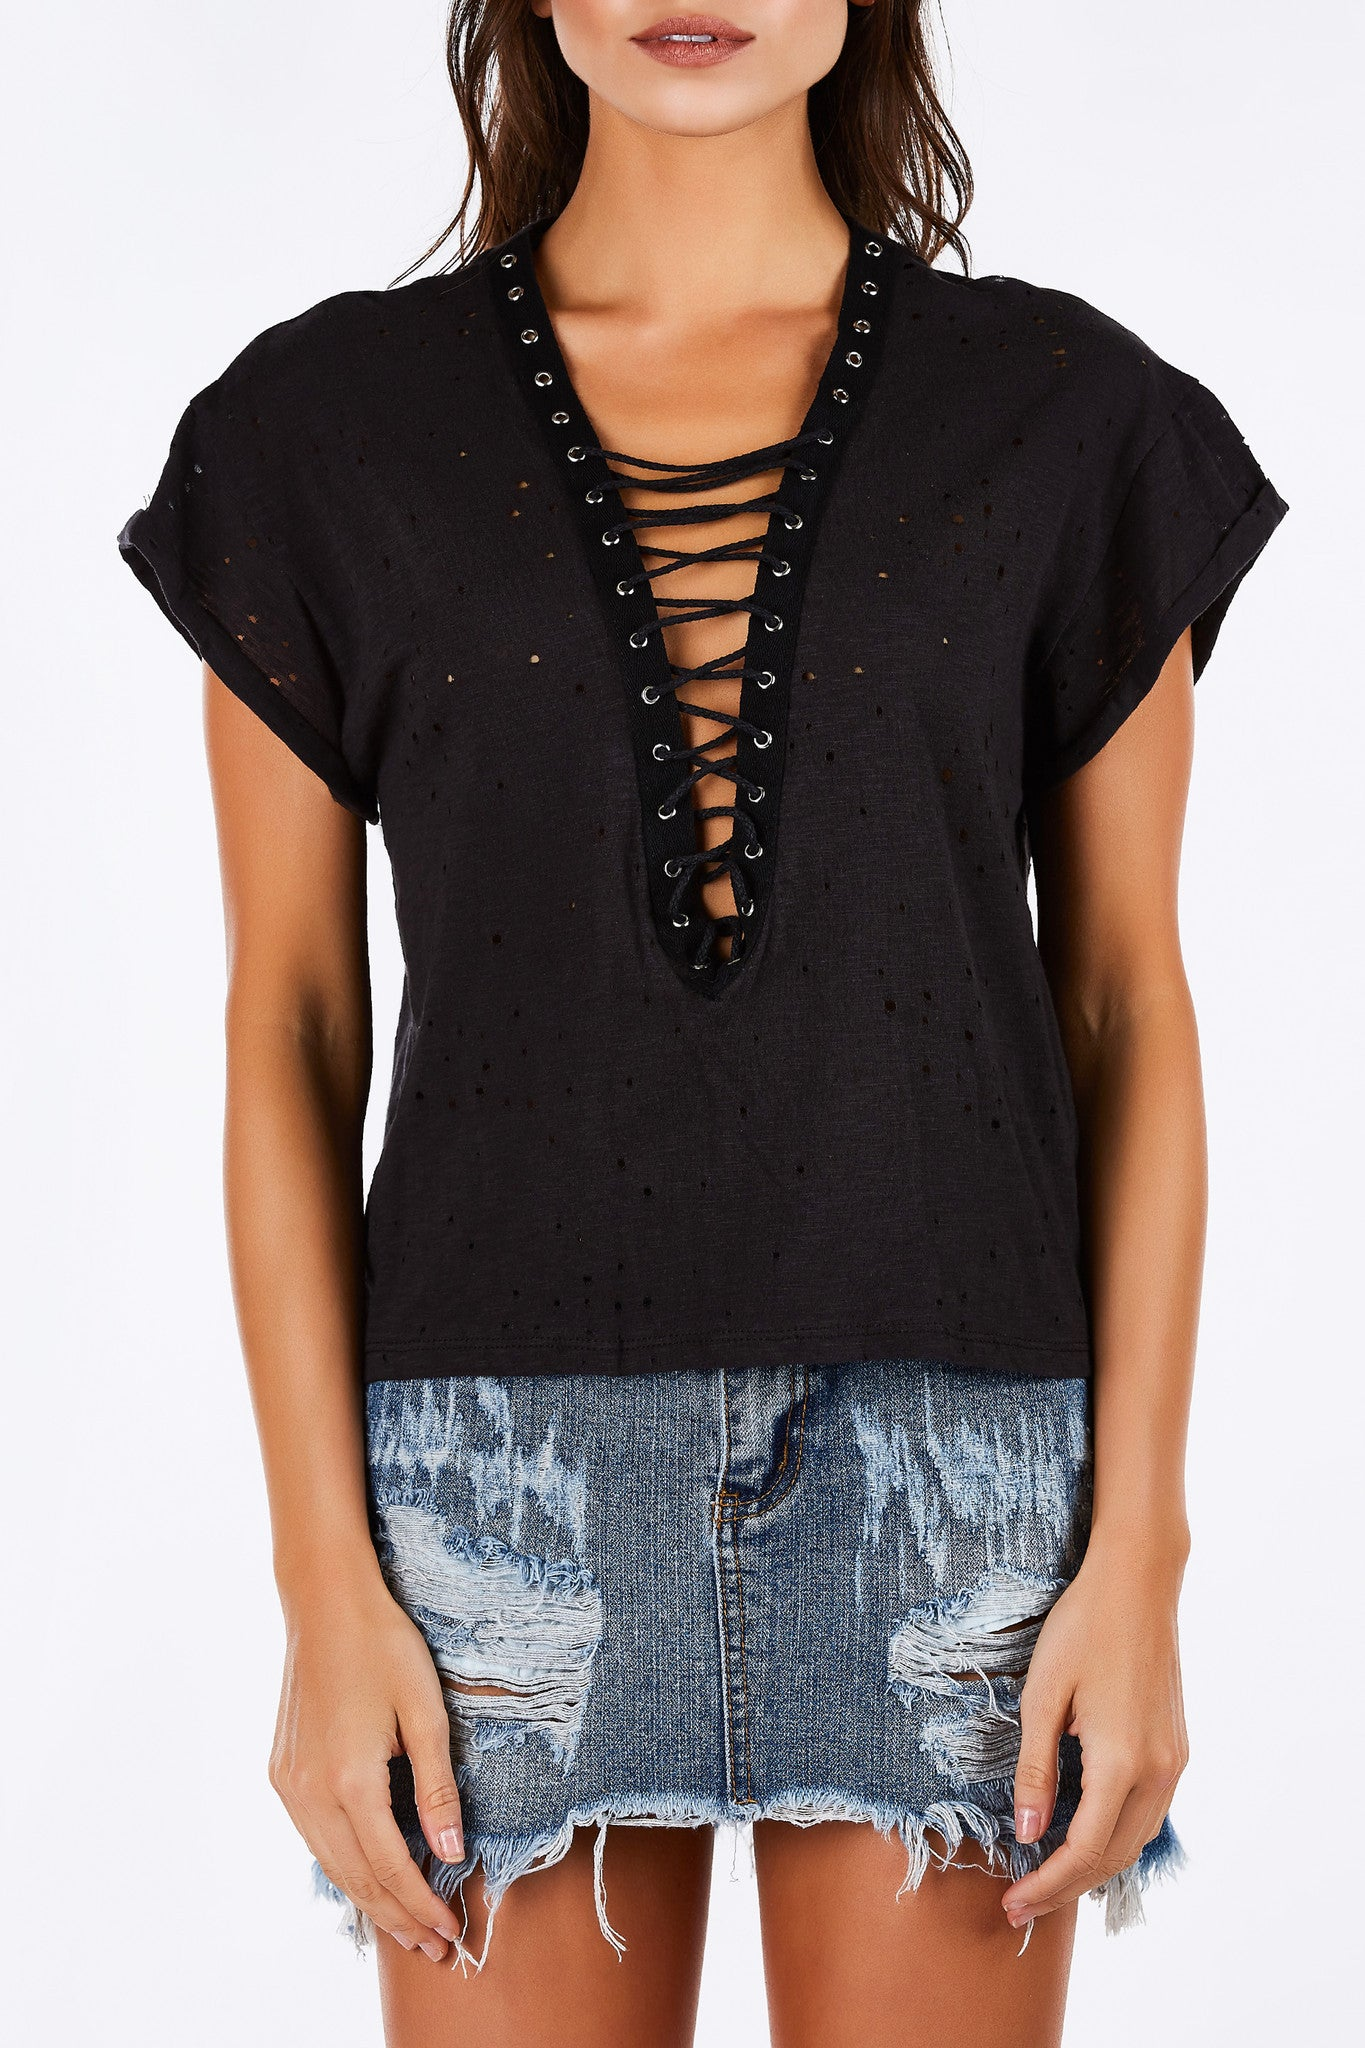 Distressed with a comfortable relaxed fit. Trendy lace up neckline for a soft grunge feel. Lightweight, breathable material to keep you cool during the heat. Pair with denim cut offs and sneakers for a street-style look.